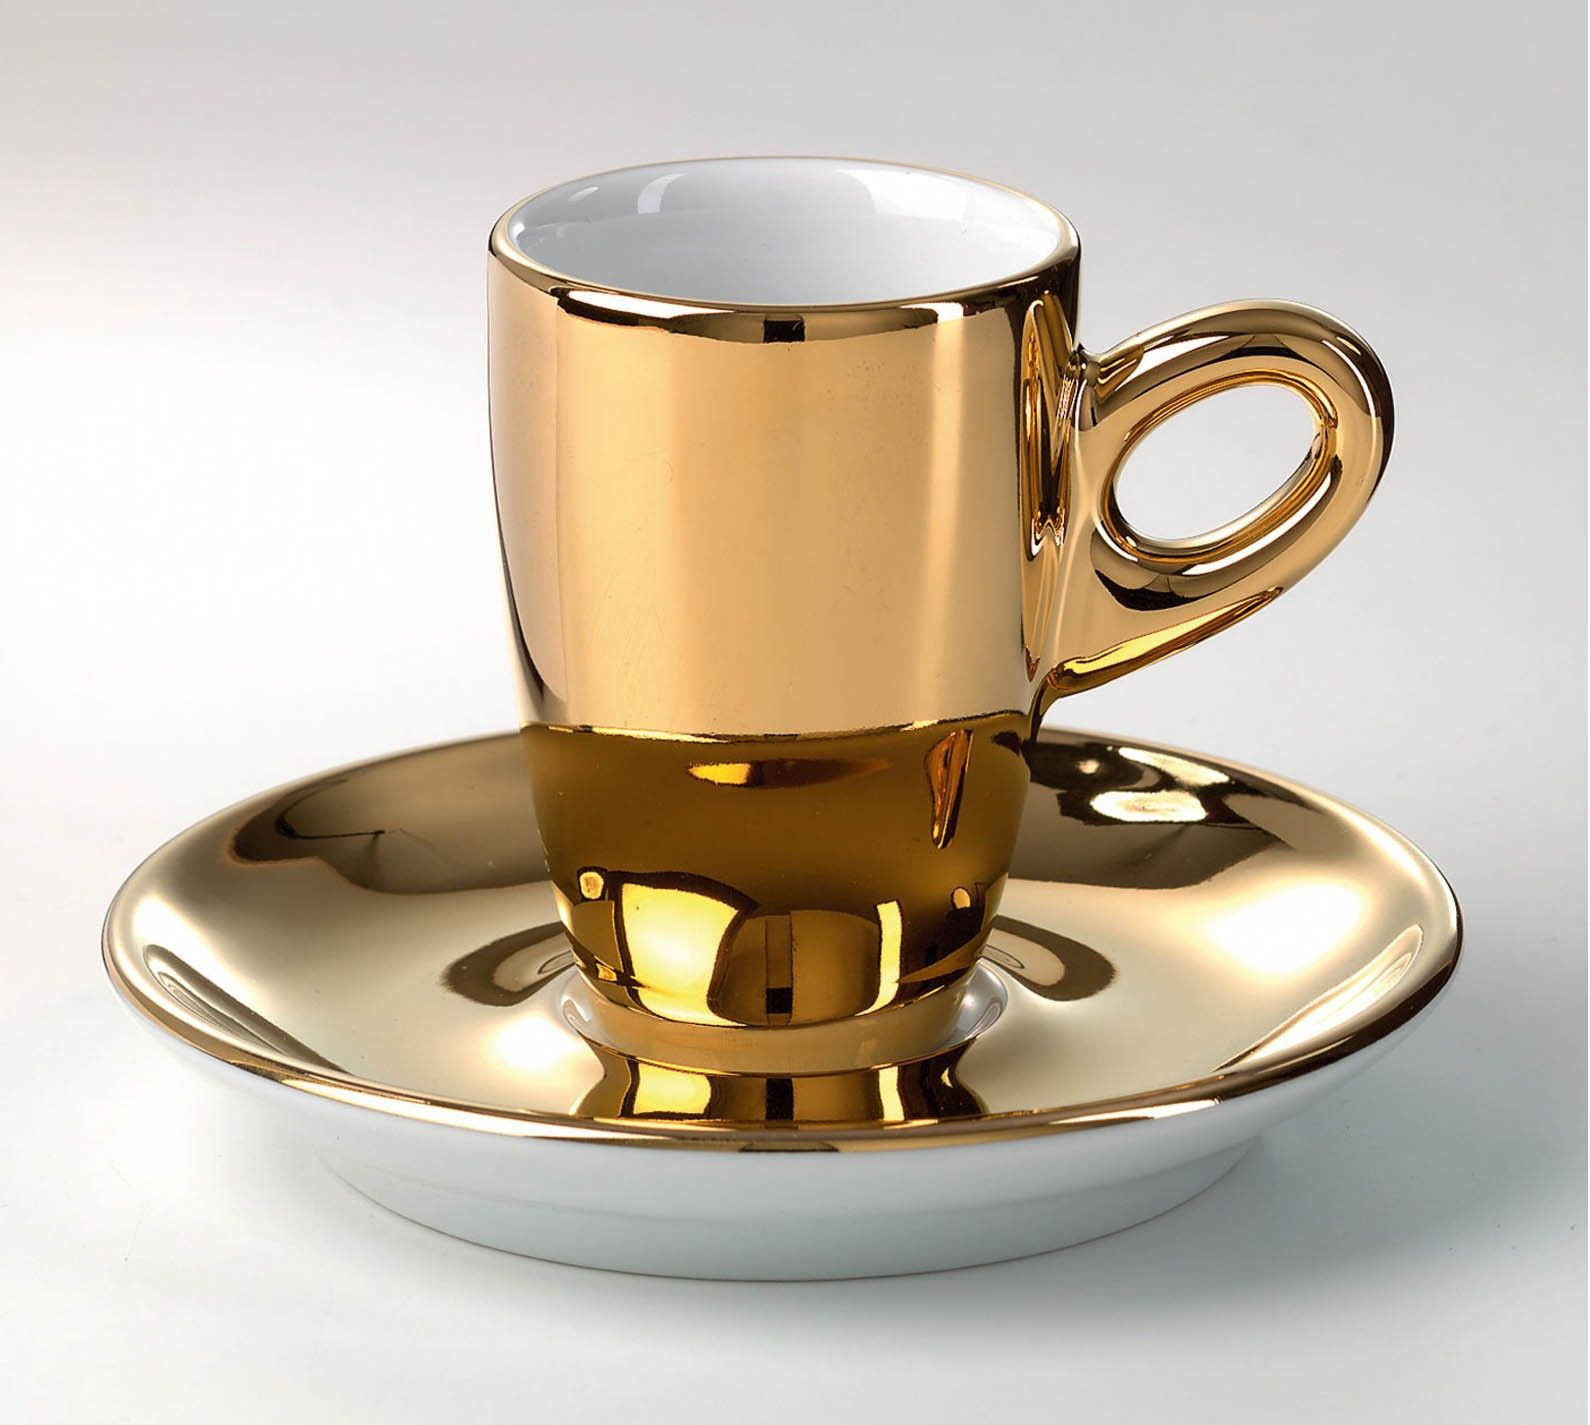 walkuere gold espresso cup pazza per espresso pinterest espresso kaffee und gold. Black Bedroom Furniture Sets. Home Design Ideas